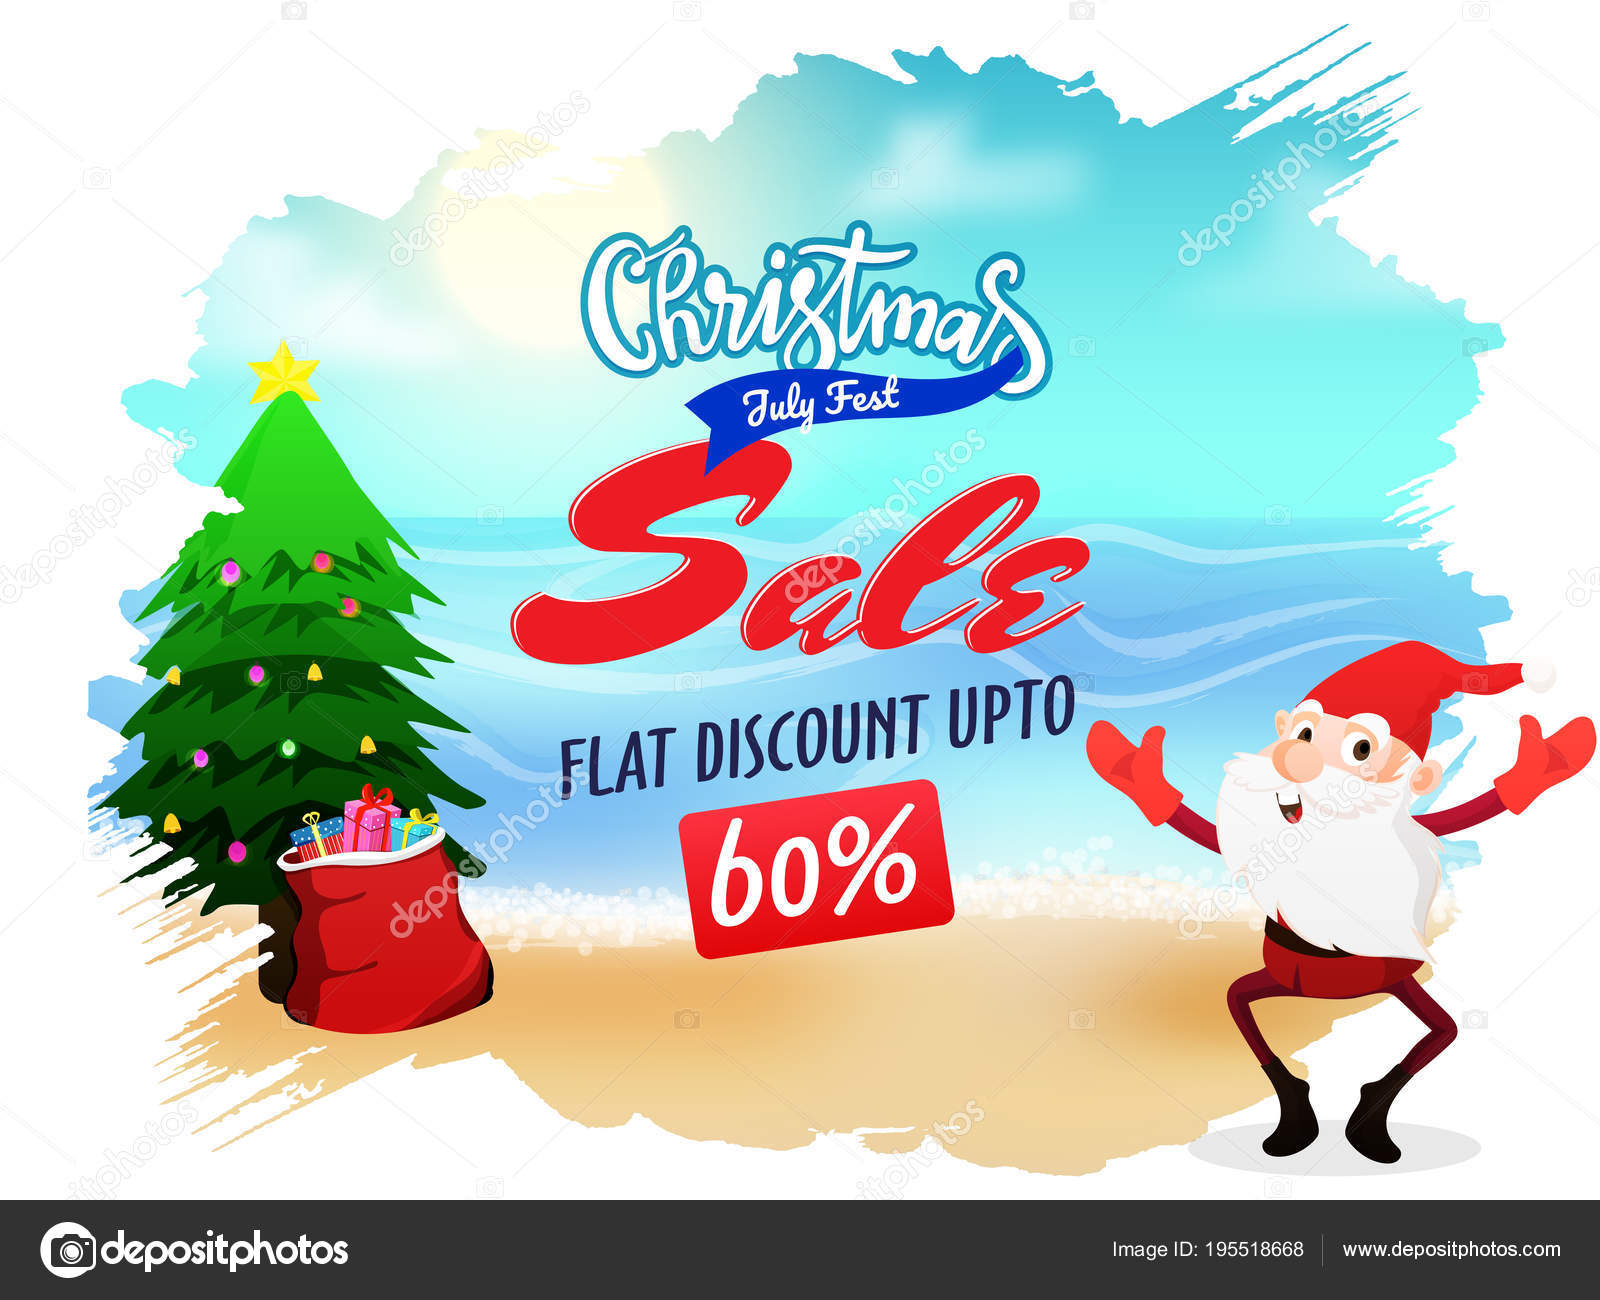 Christmas sale in July poster banner or flyer design with Santa